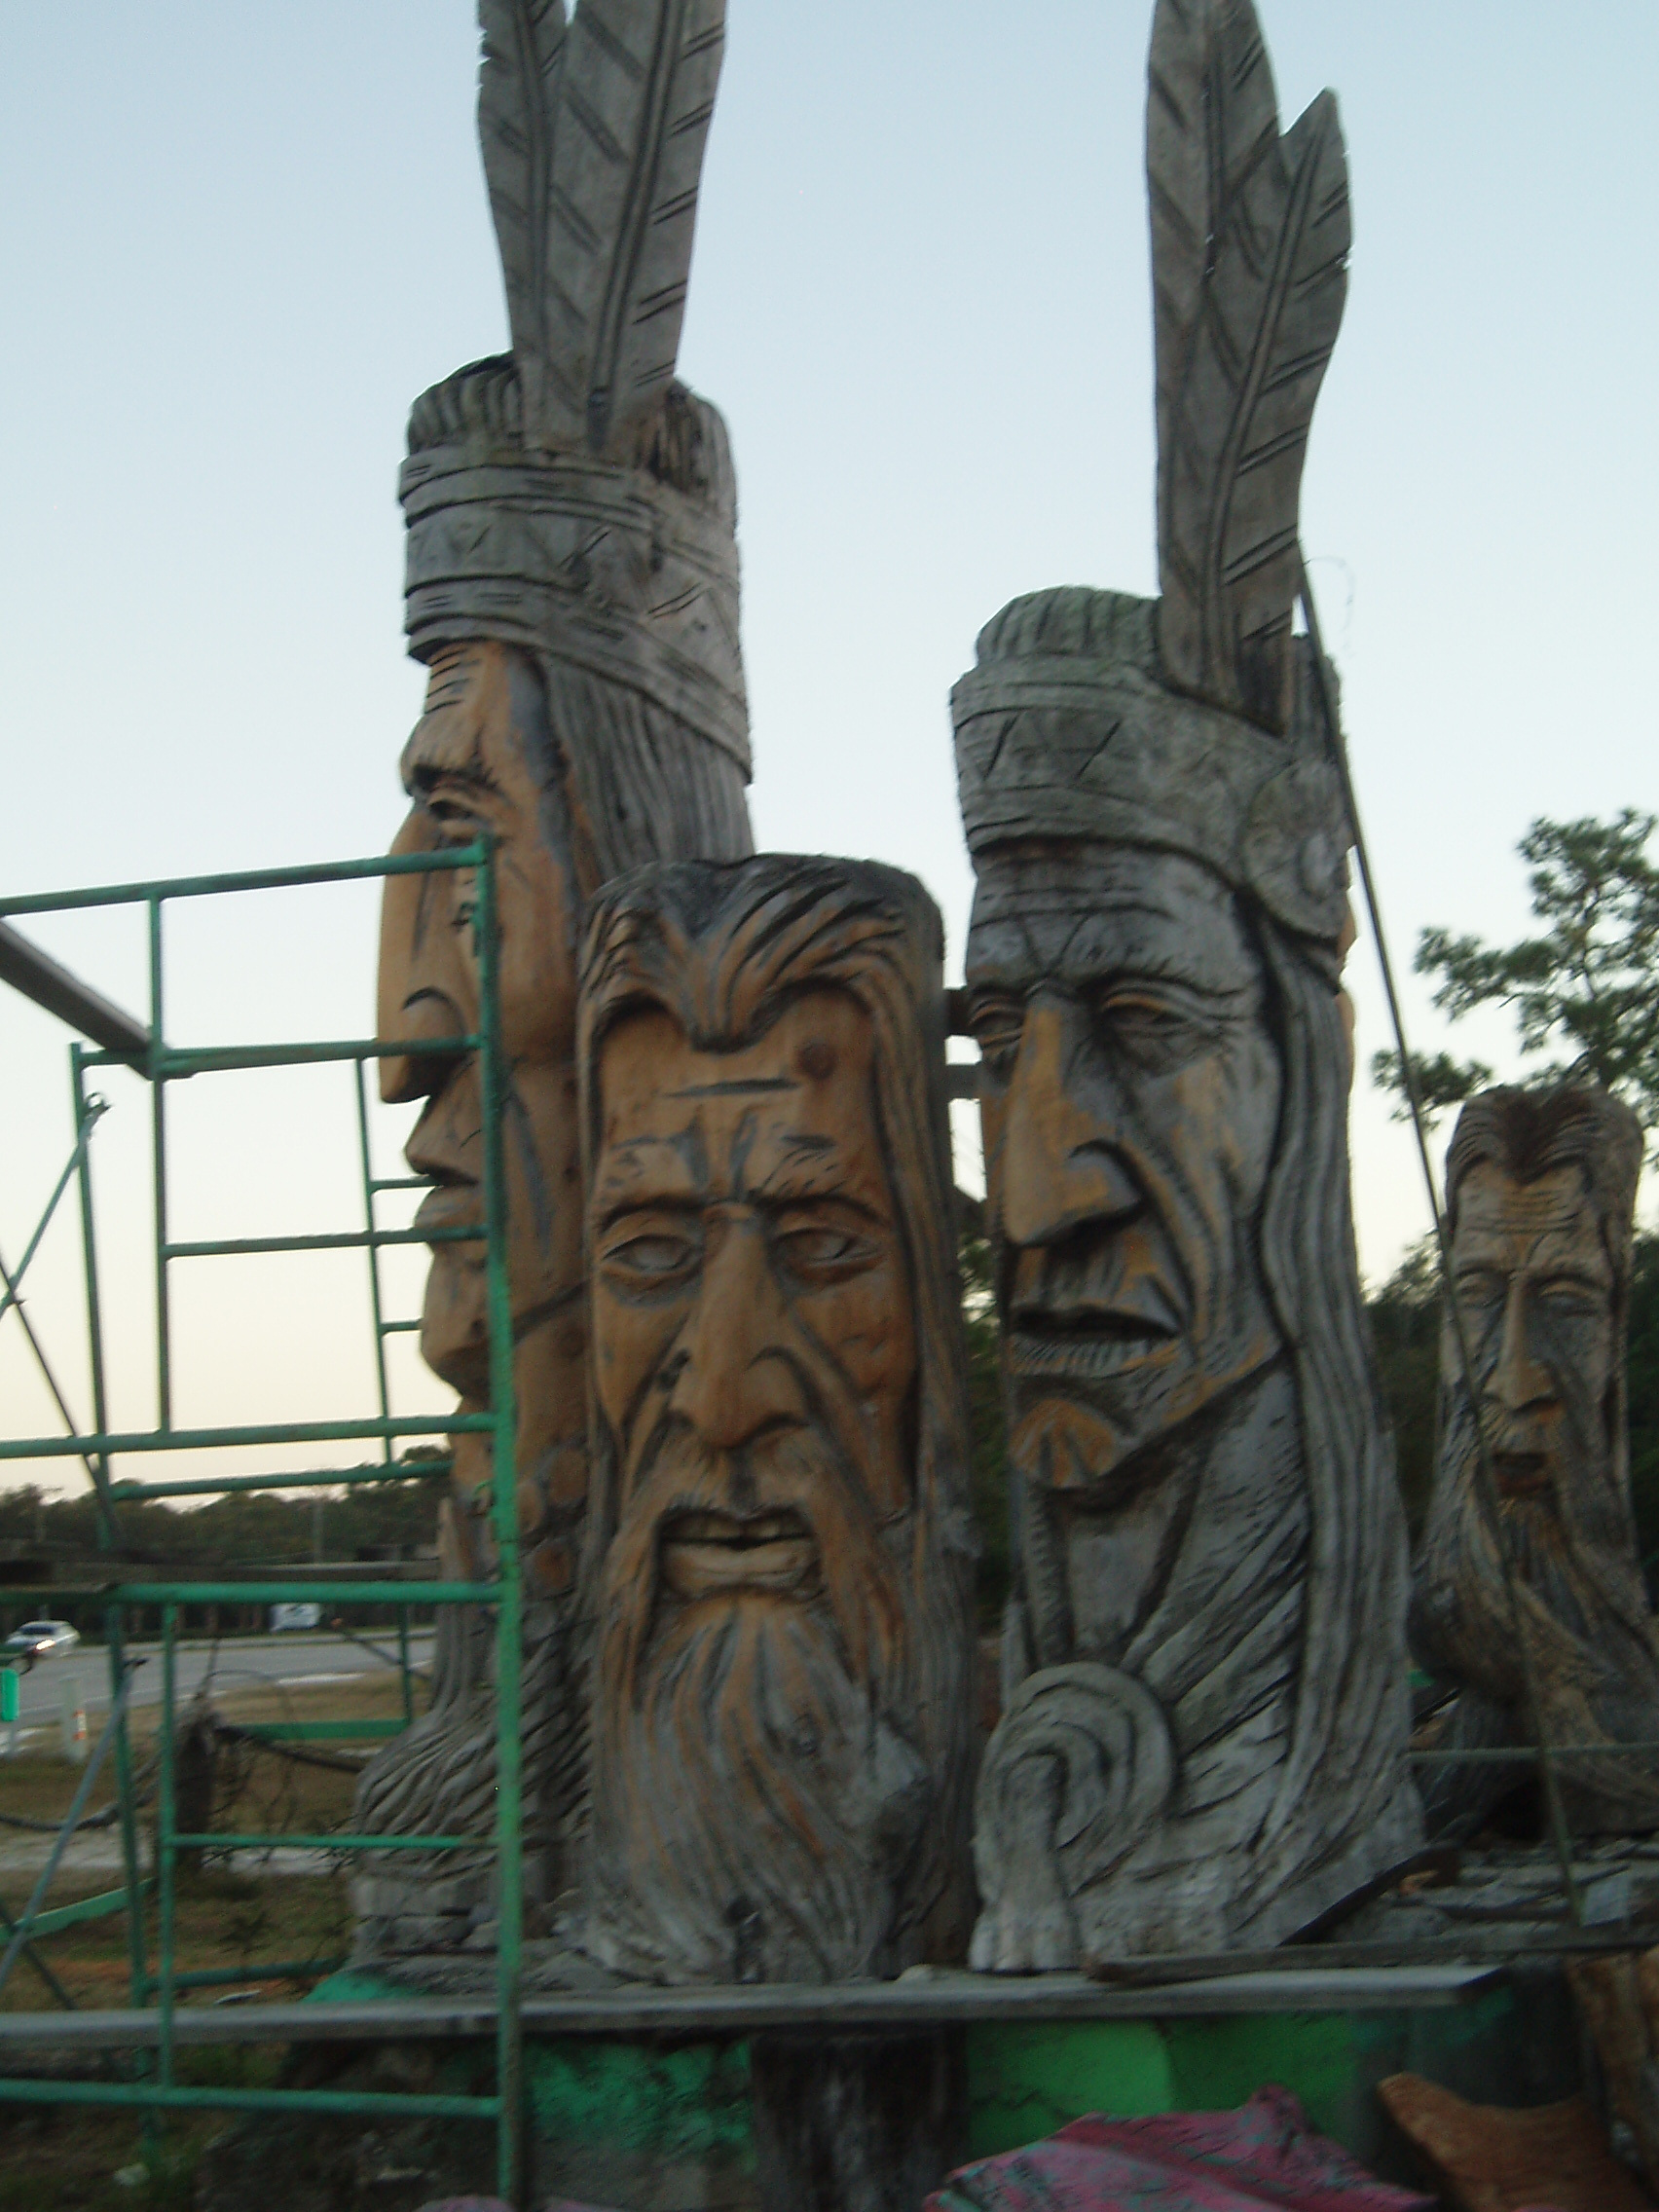 Caption: Statues by Peter Wolf Toth, Credit: Charles McGuigan